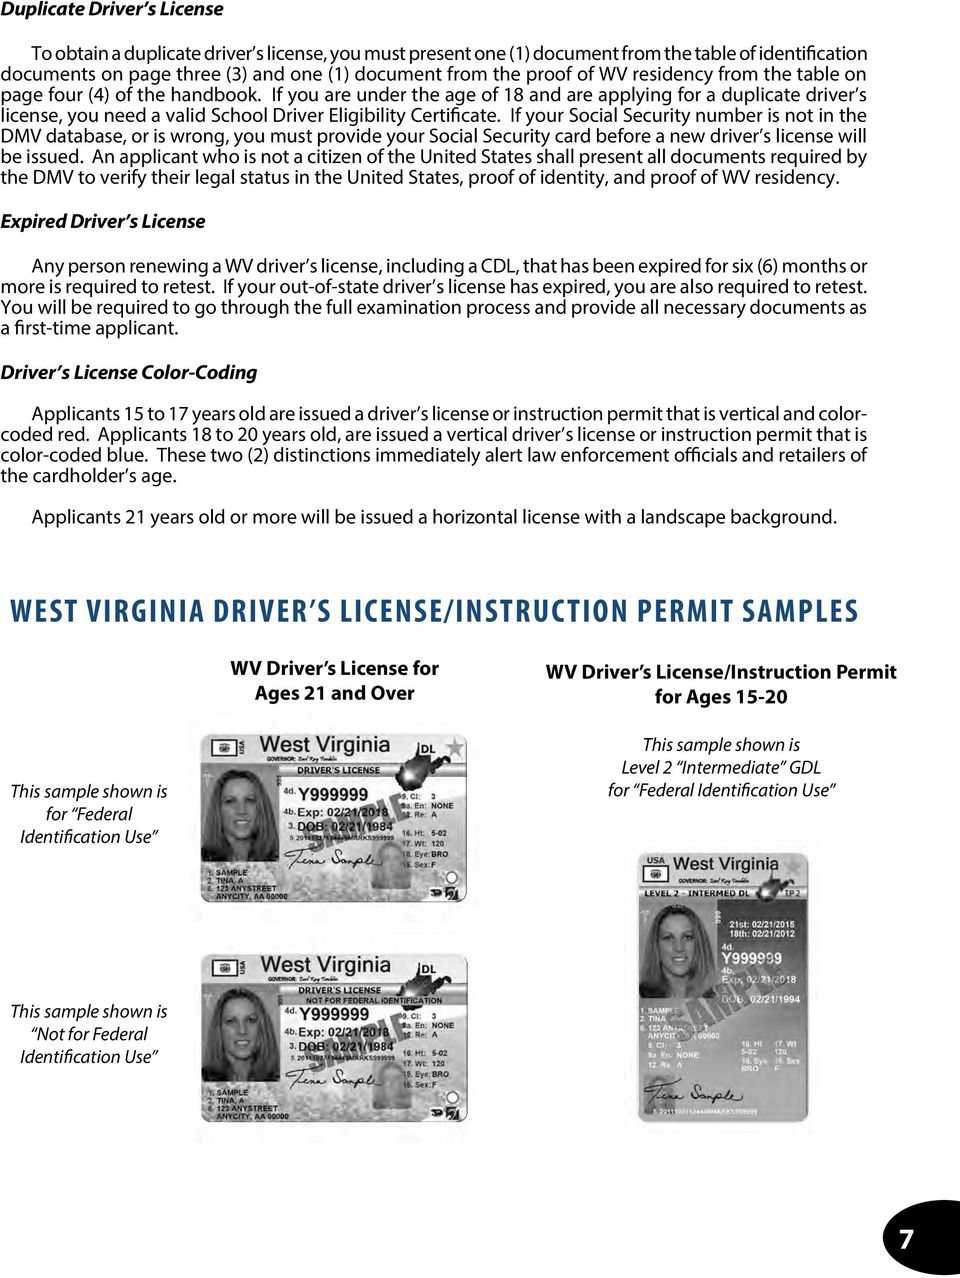 If you are under the age of 18 and are applying for a duplicate driver s license, you need a valid School Driver Eligibility Certificate.